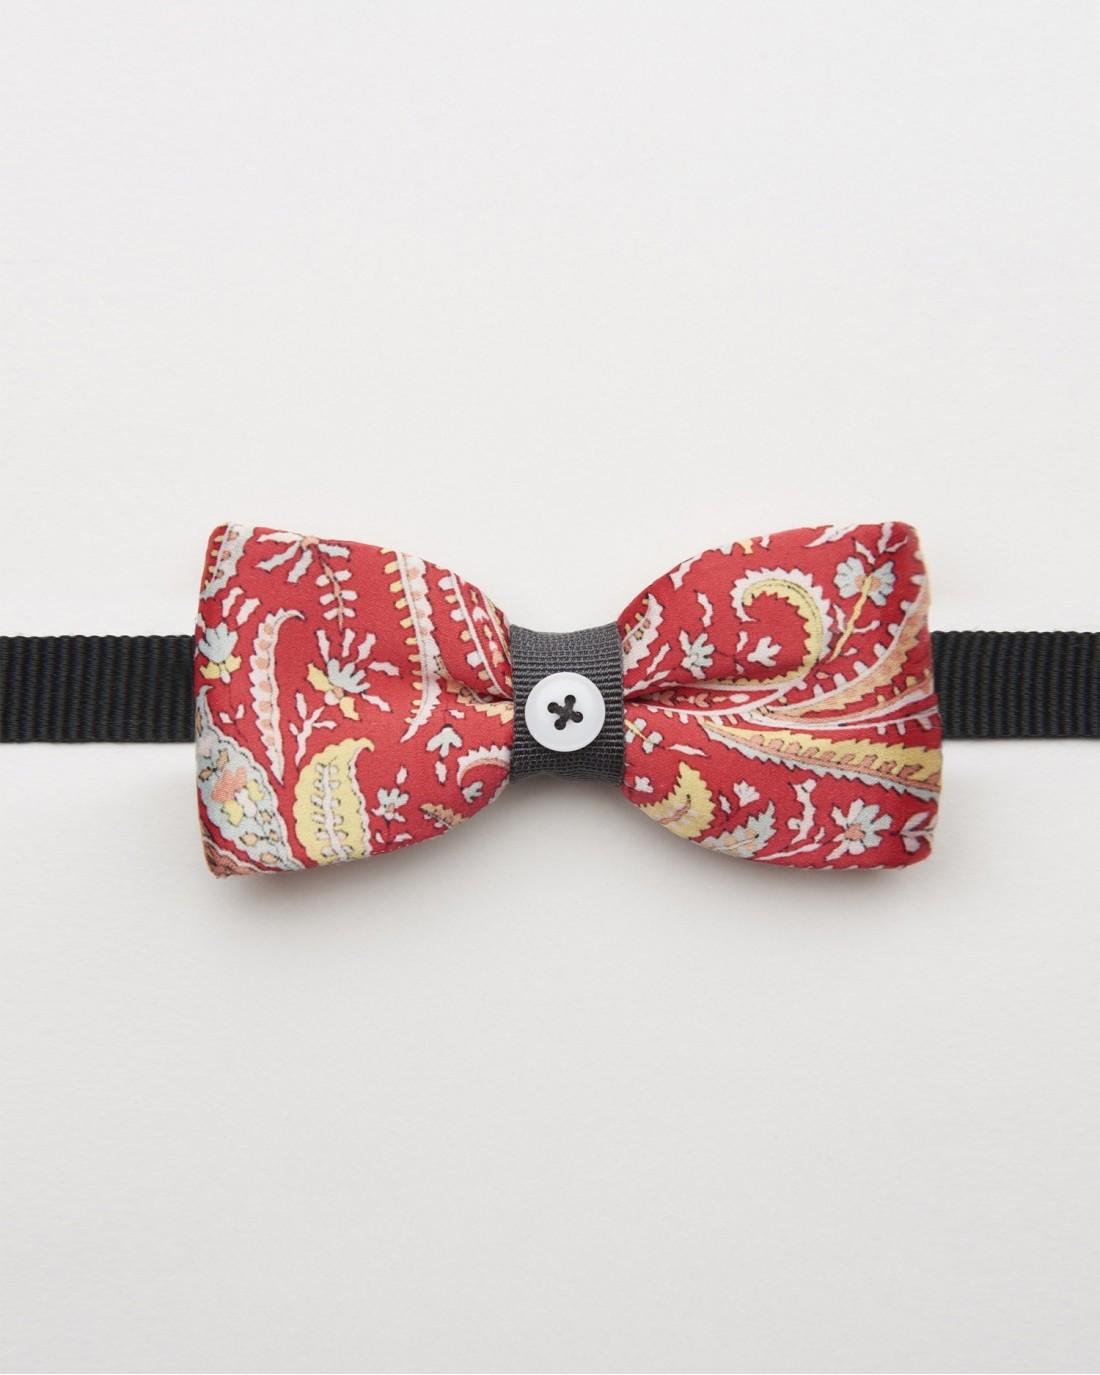 Bow Tie Sbrillo Siena Red